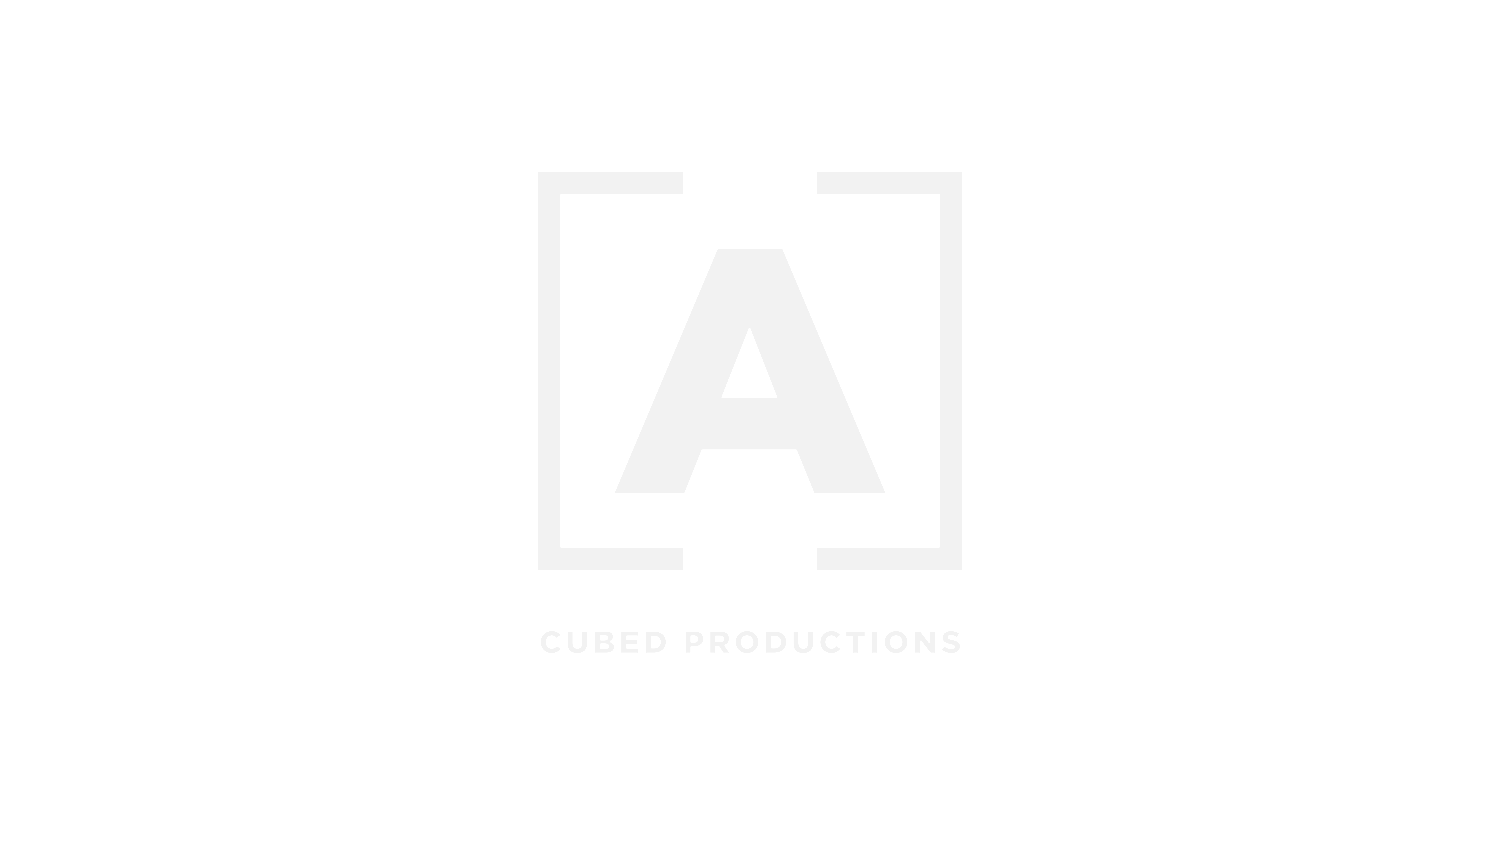 A CUBED PRODUCTIONS